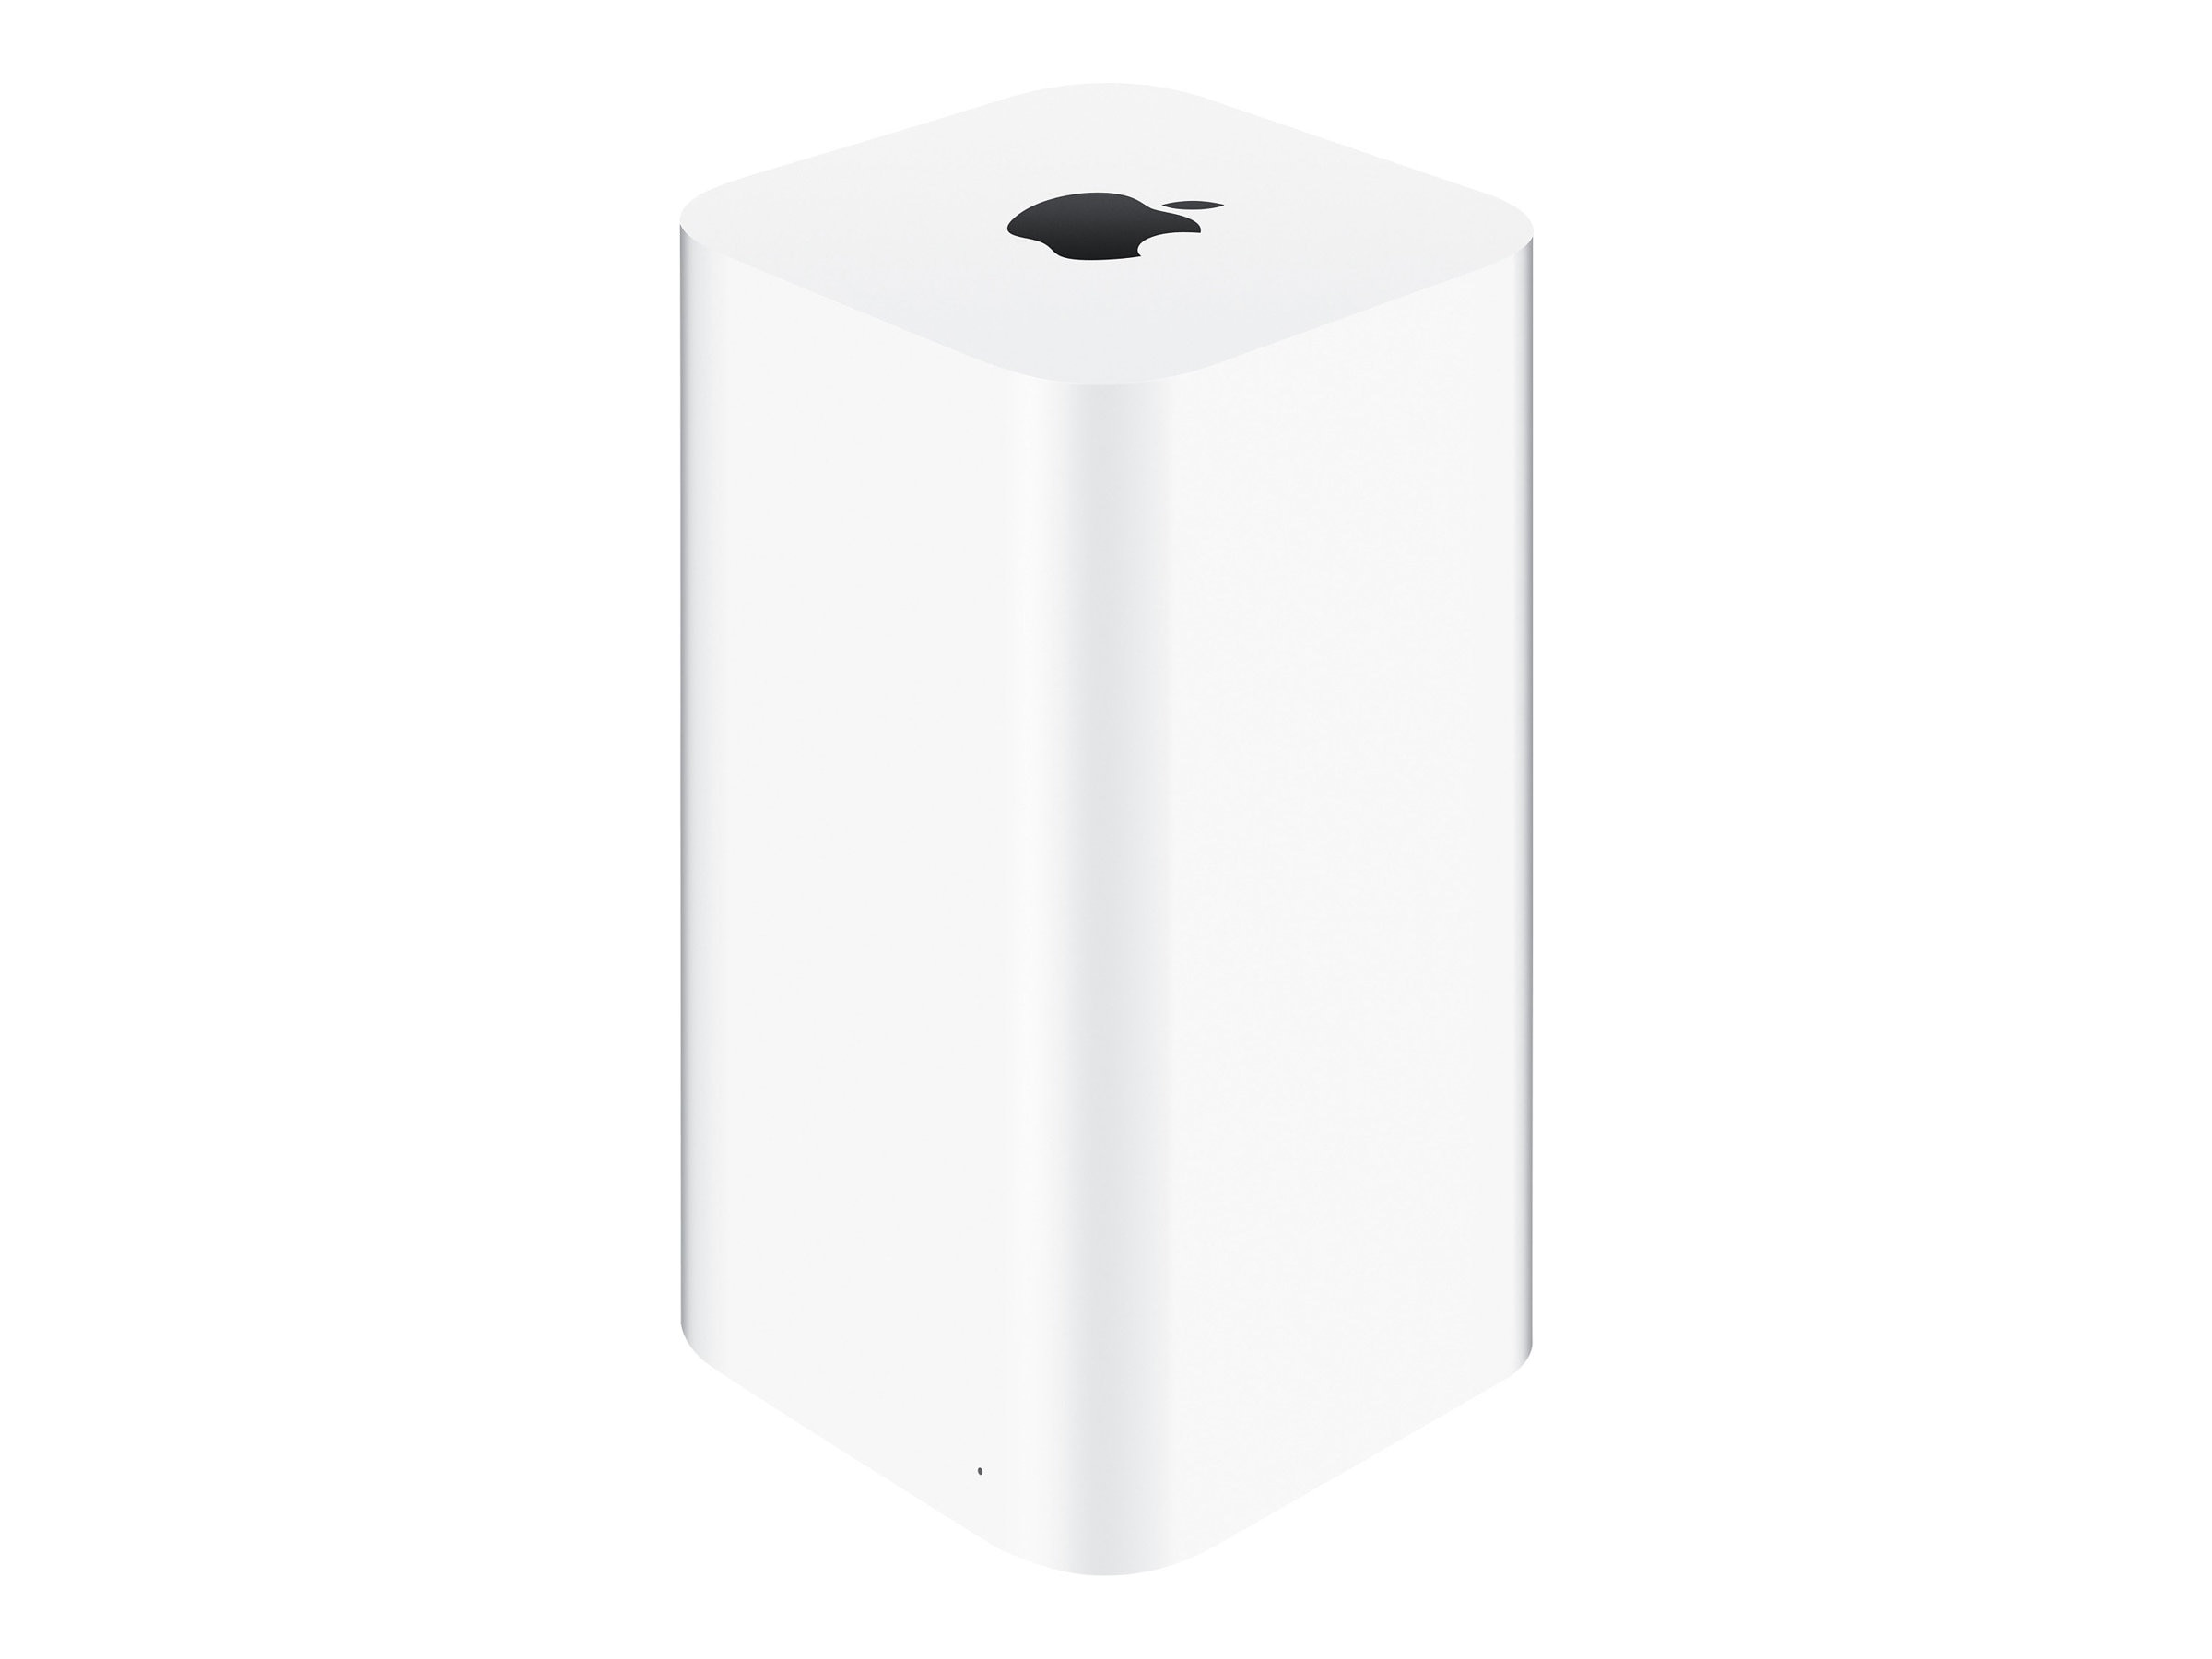 Apple AirPort Time Capsule - 2TB (802.11ac, 2013), ME177LL/A, 15903309, Network Attached Storage